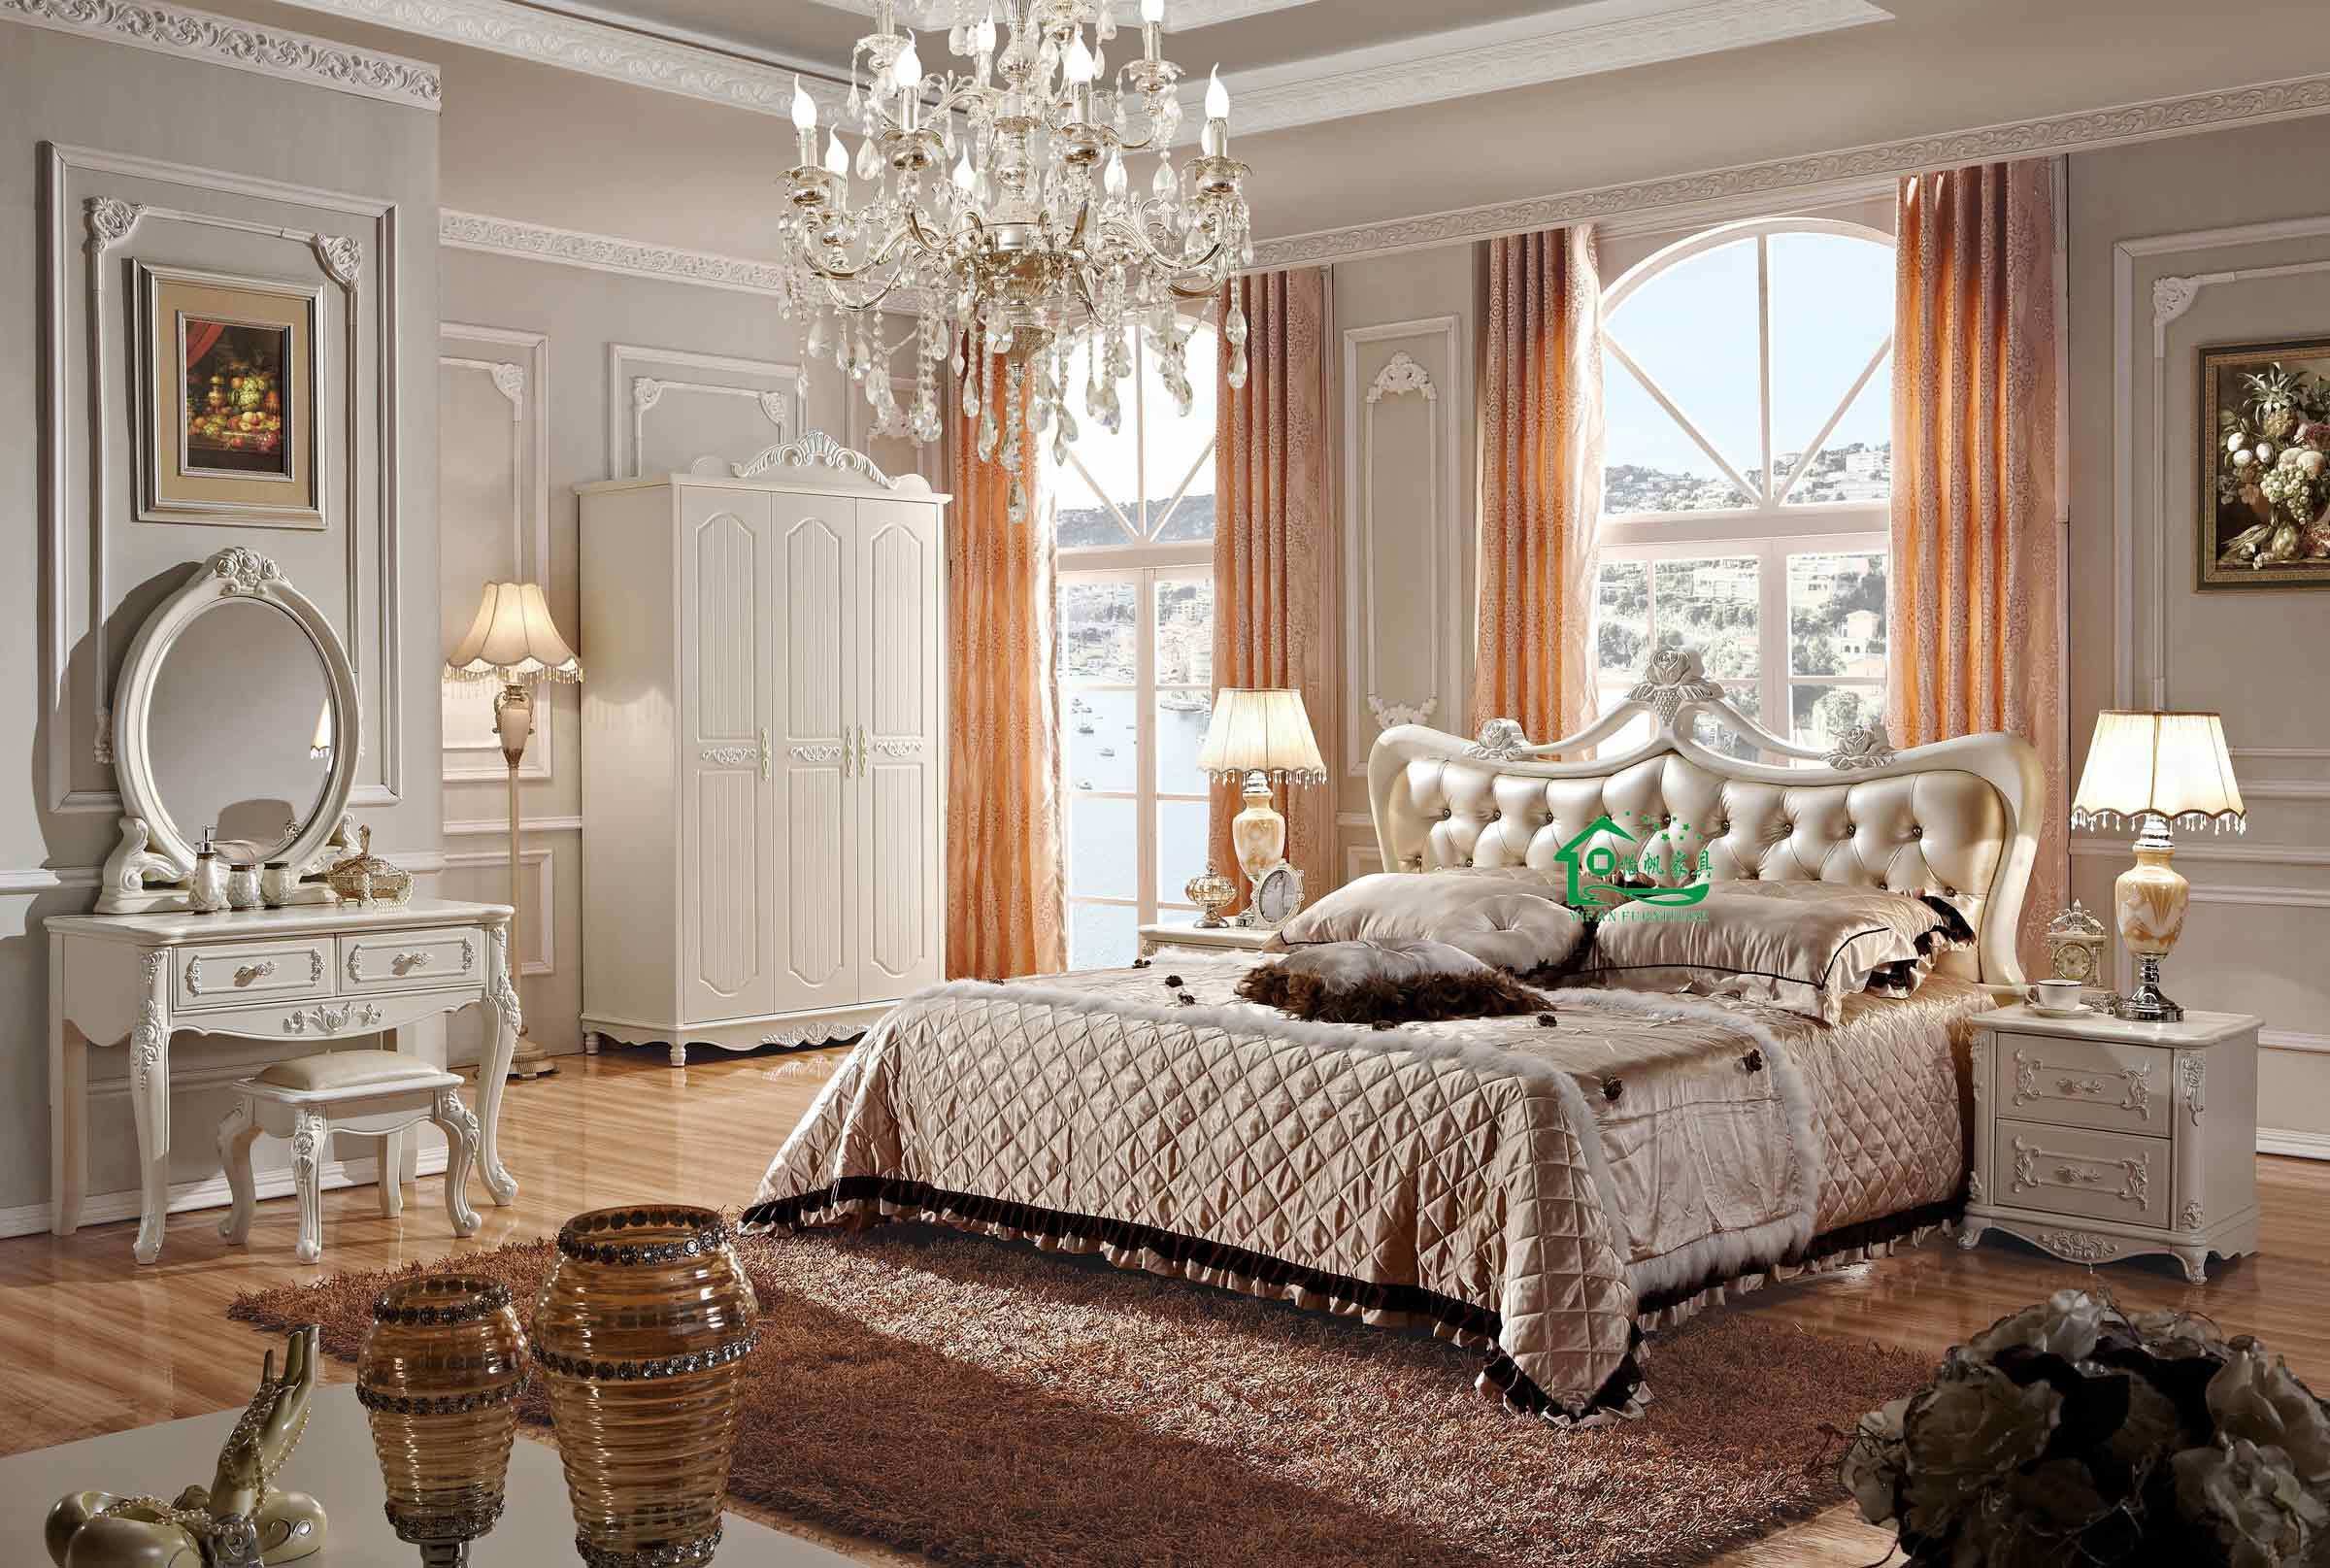 Bedroom Furniture 2013 antique white french provincial bedroom furniture | mattress